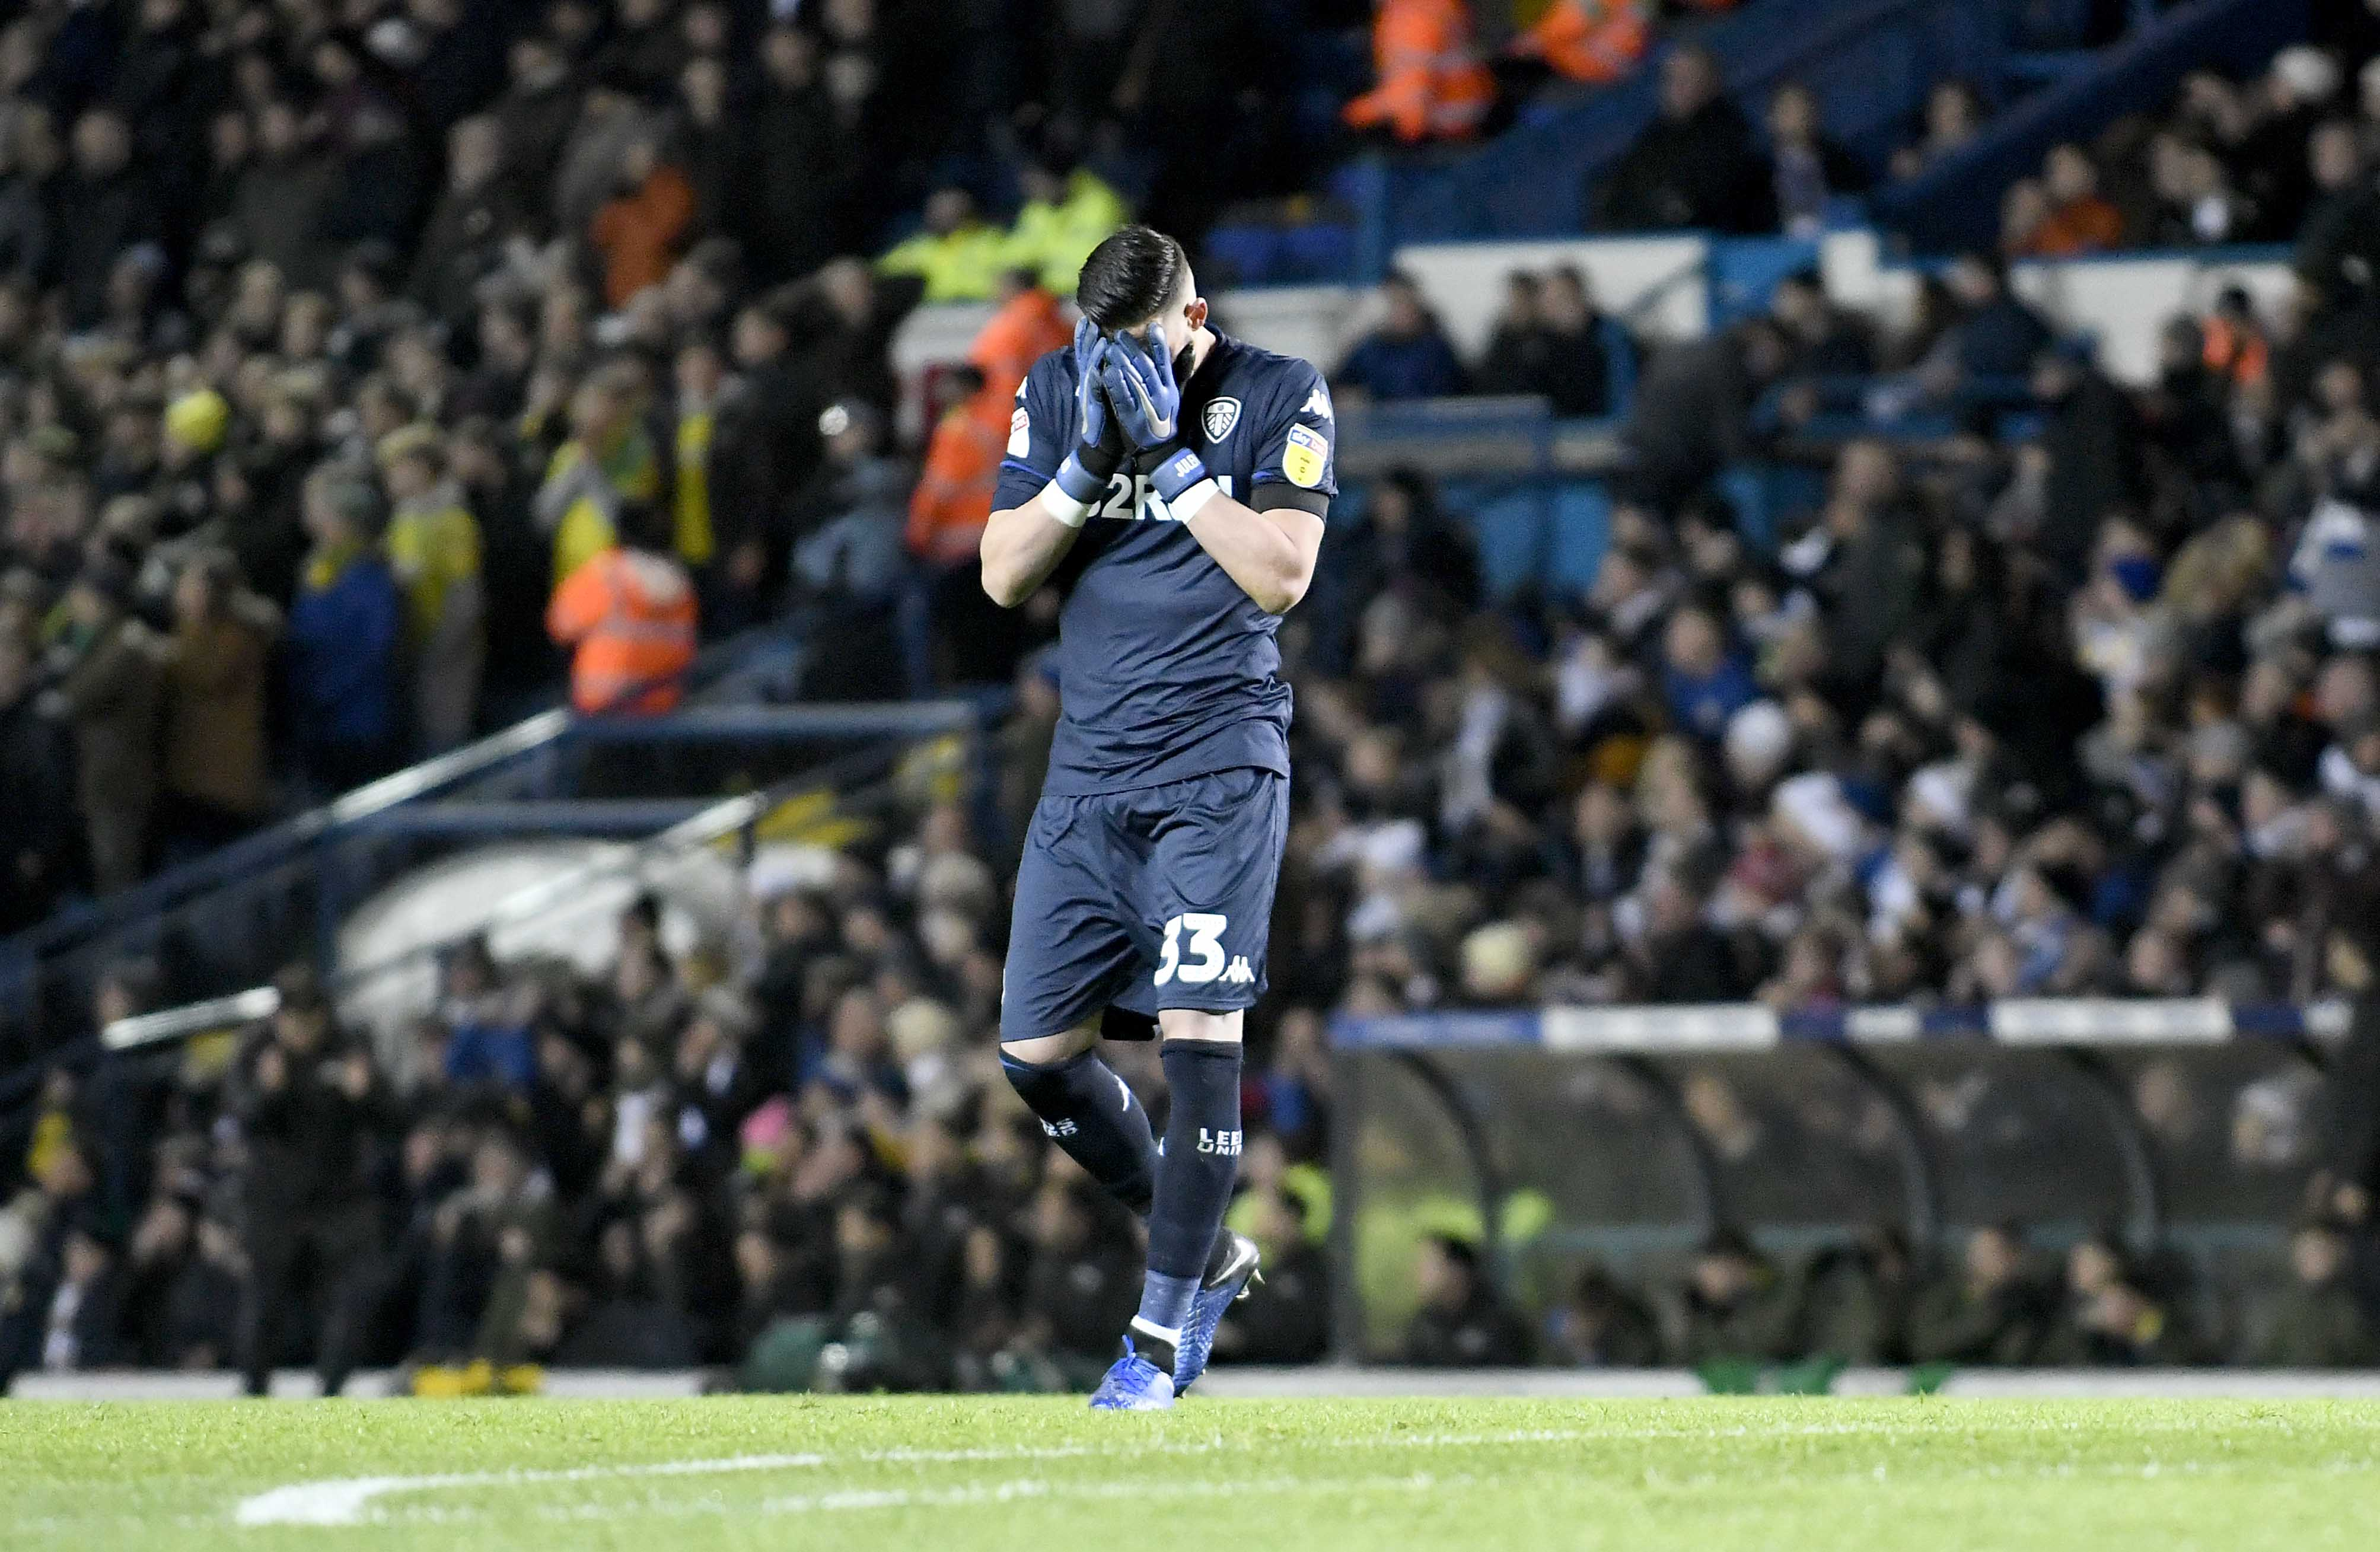 Morning Leeds-in for 19 March: Leeds United accepts one-match ban for keeper Kiko Casilla